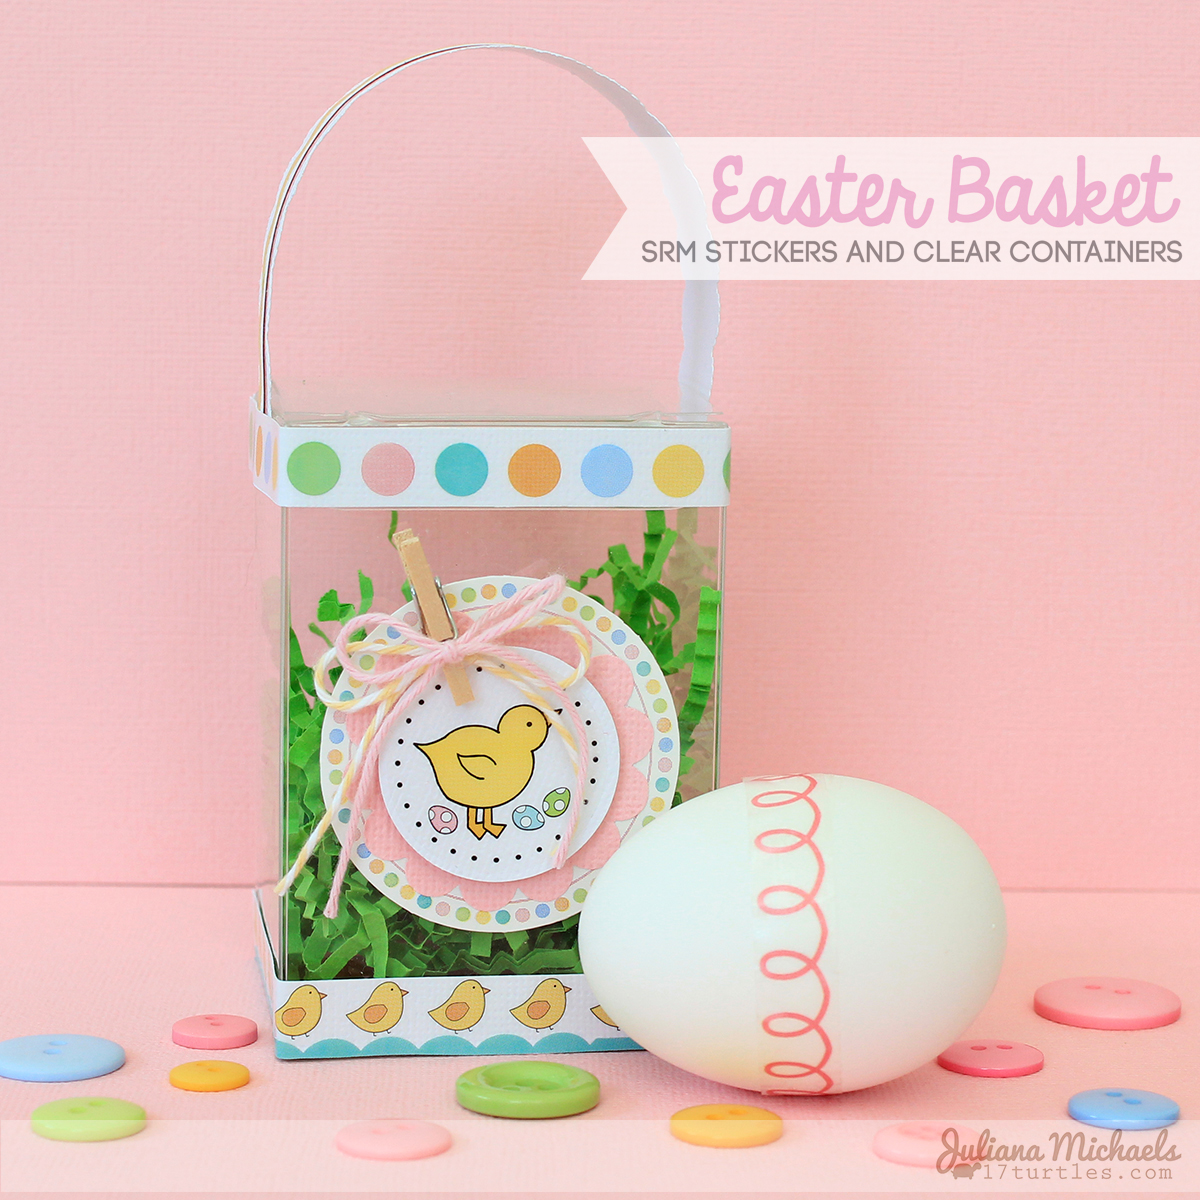 Mini Easter Basket by Juliana Michaels using SRM Stickers and Clear Containers